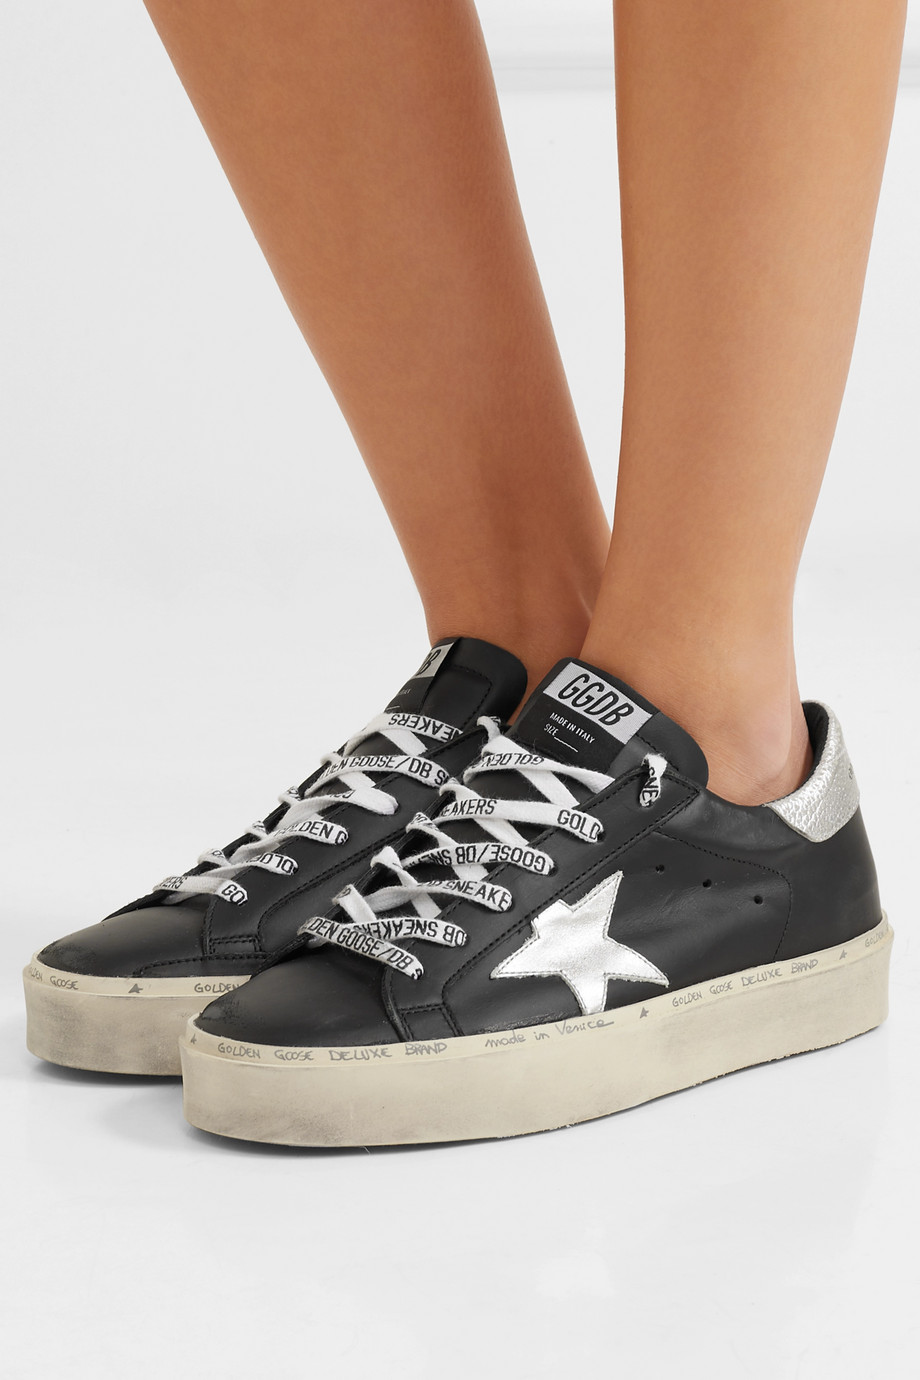 Golden Goose Hi Star distressed leather sneakers